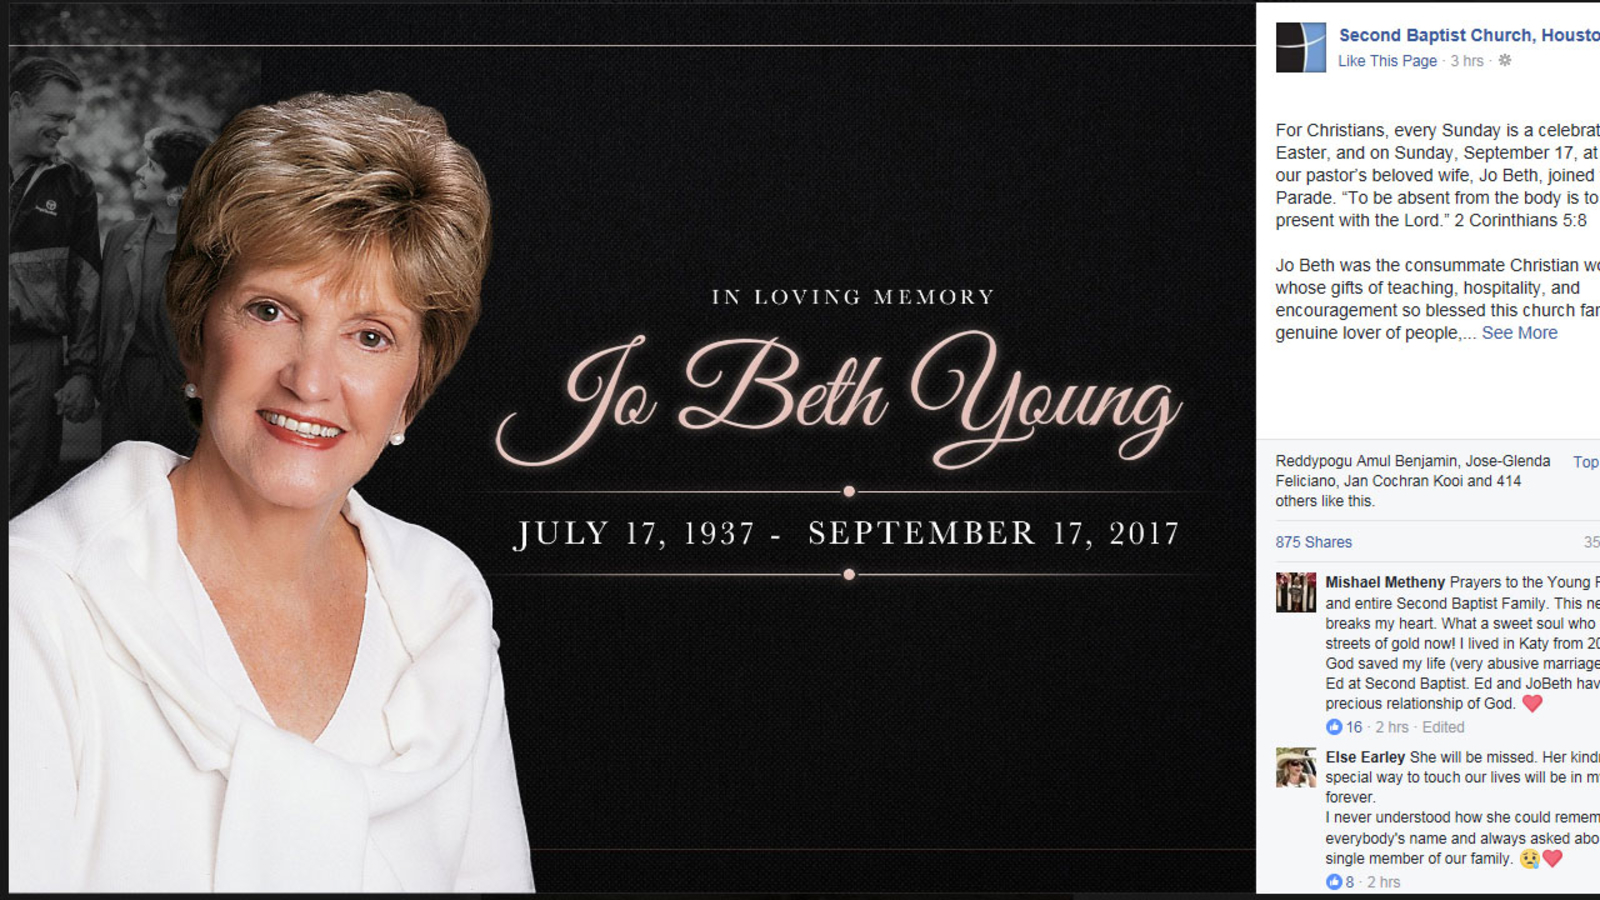 Jo Beth Young, of Second Baptist Church, dead at 80